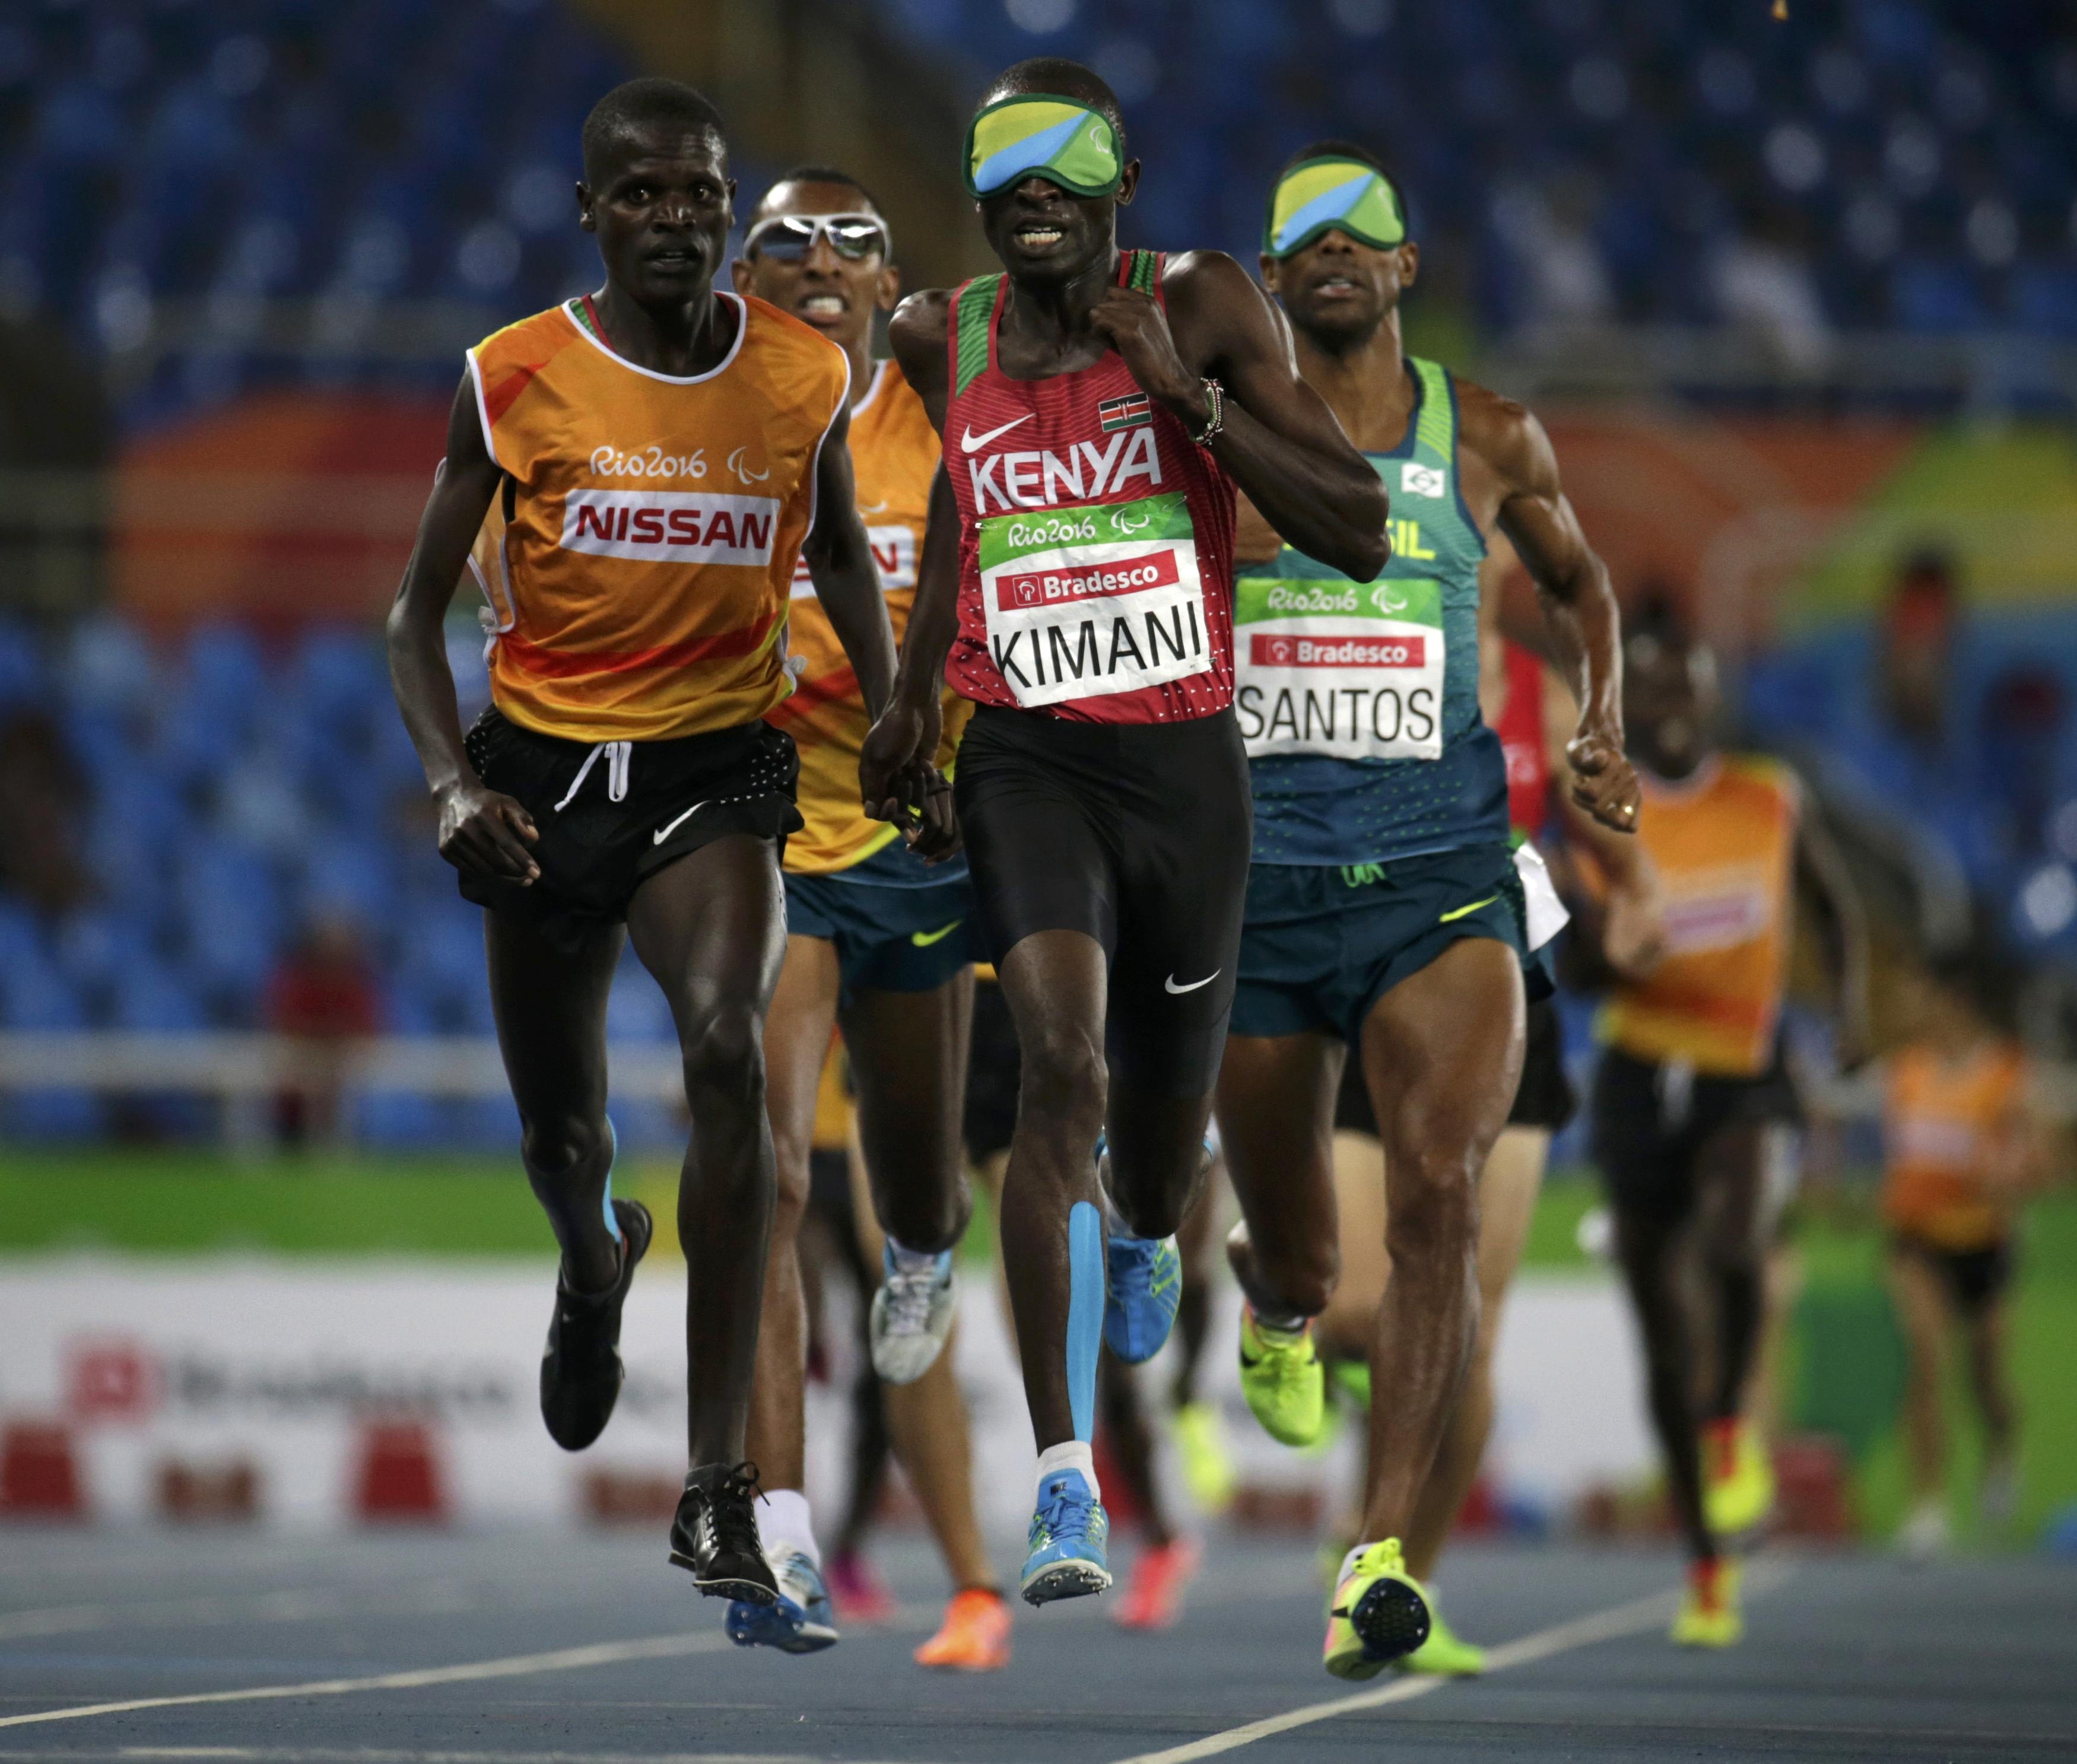 2016 Rio Paralympics - Athletics - Men's 1500m - T11 Final - Olympic Stadium - Rio de Janeiro, Brazil - 13/09/2016. Samwel Mushai Kimani of Kenya leads the pack with his guide James Boit while on his way to winning the gold medal in the event. REUTERS/Ricardo Moraes FOR EDITORIAL USE ONLY. NOT FOR SALE FOR MARKETING OR ADVERTISING CAMPAIGNS.